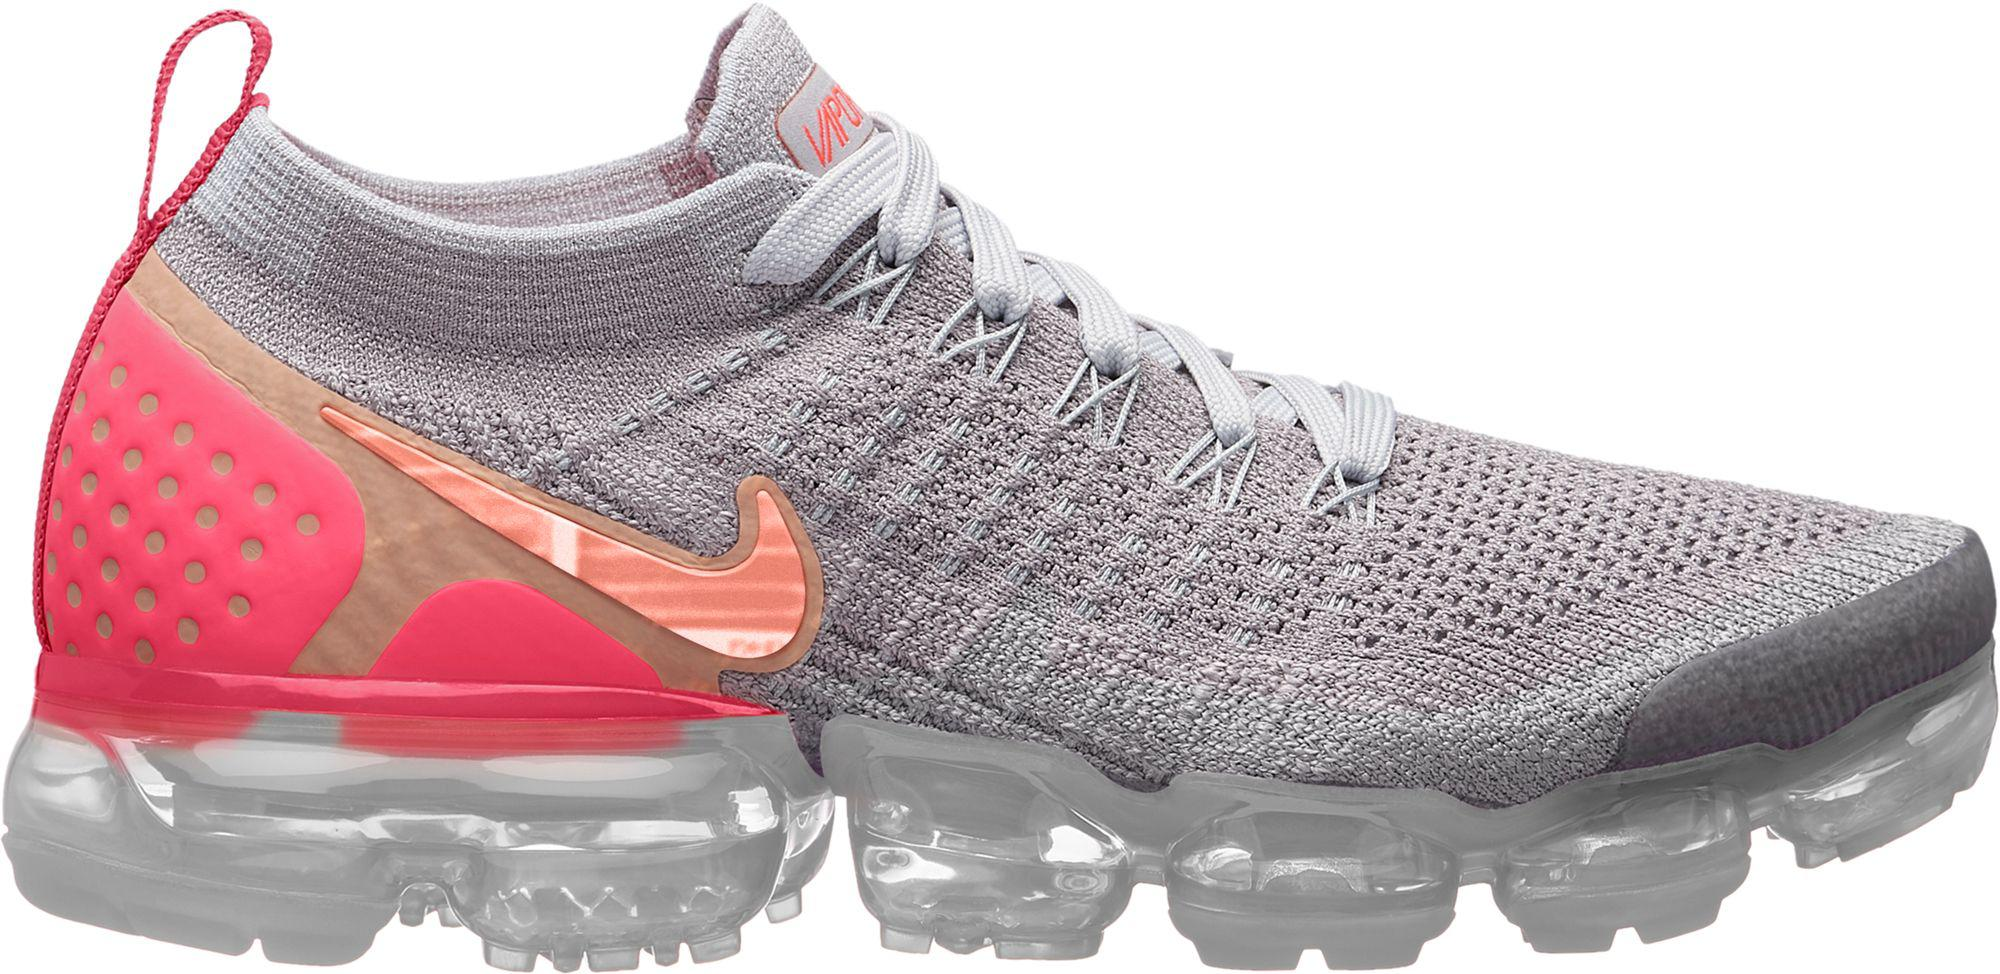 shades of outlet online beauty Air Vapormax Flyknit 2 Running Shoes